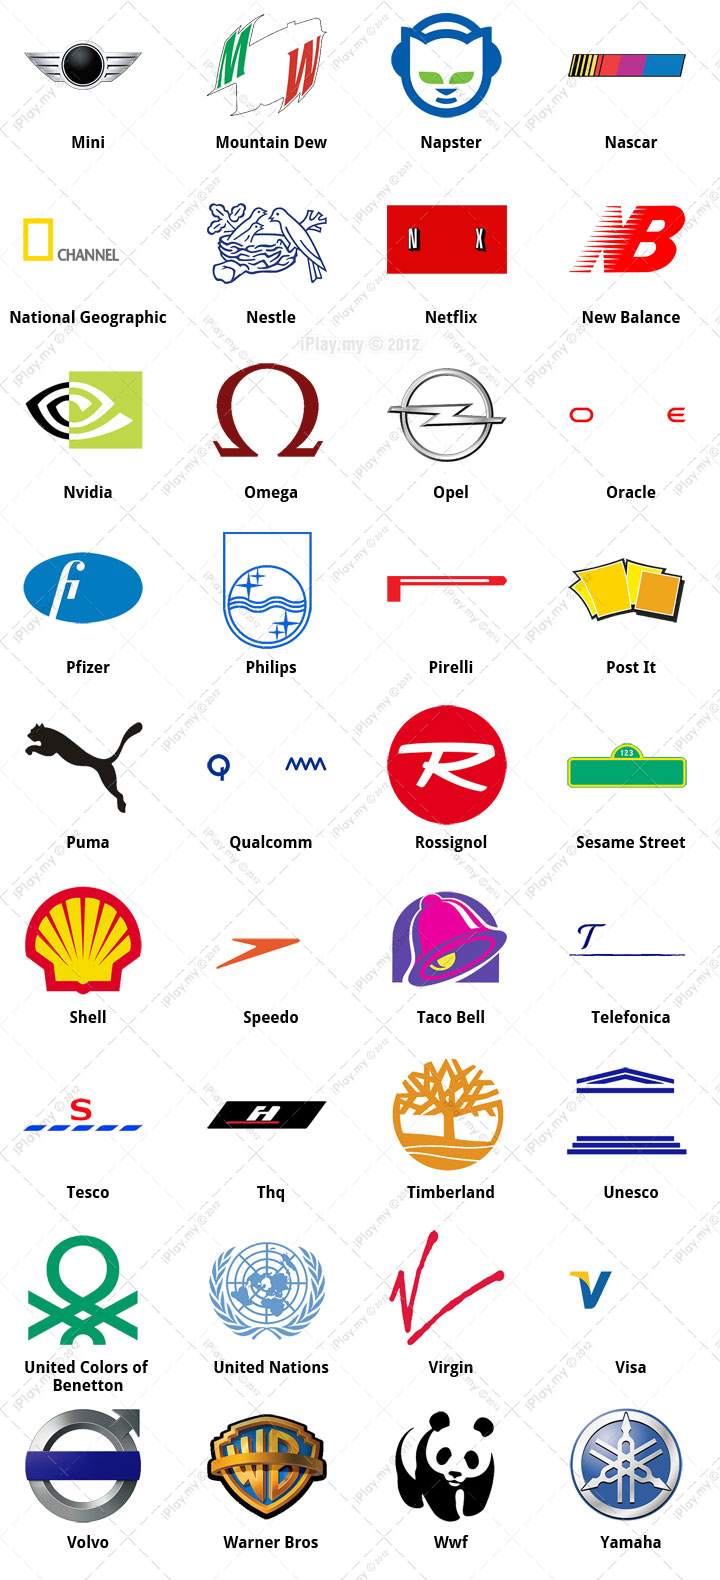 quiz logo game answers level 3